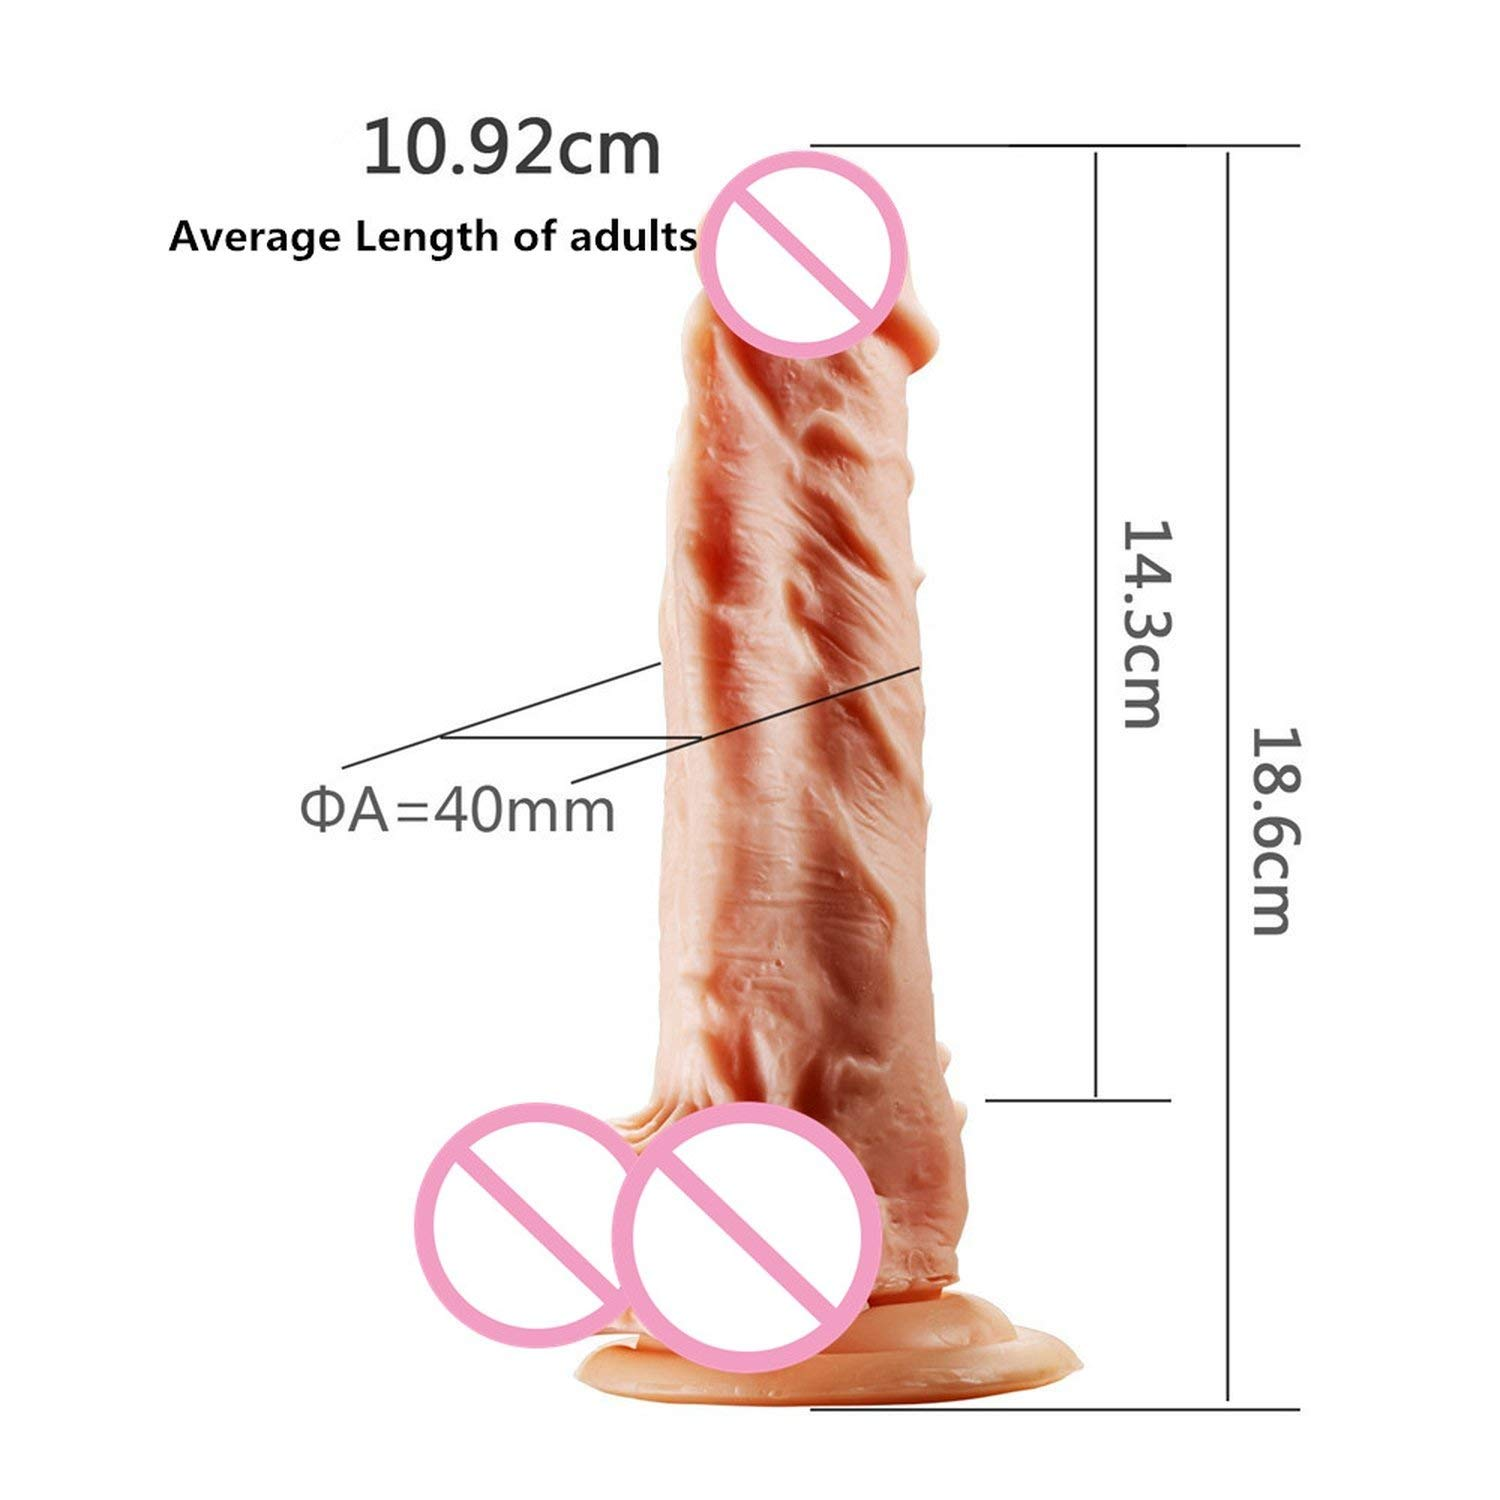 SA Tshirt Heating Vibrator Big P-Enis Rotating Anal R-ealistic Suction Cup for Women,Heating,185mmx38mm TDT by Splendid Artists (Image #6)